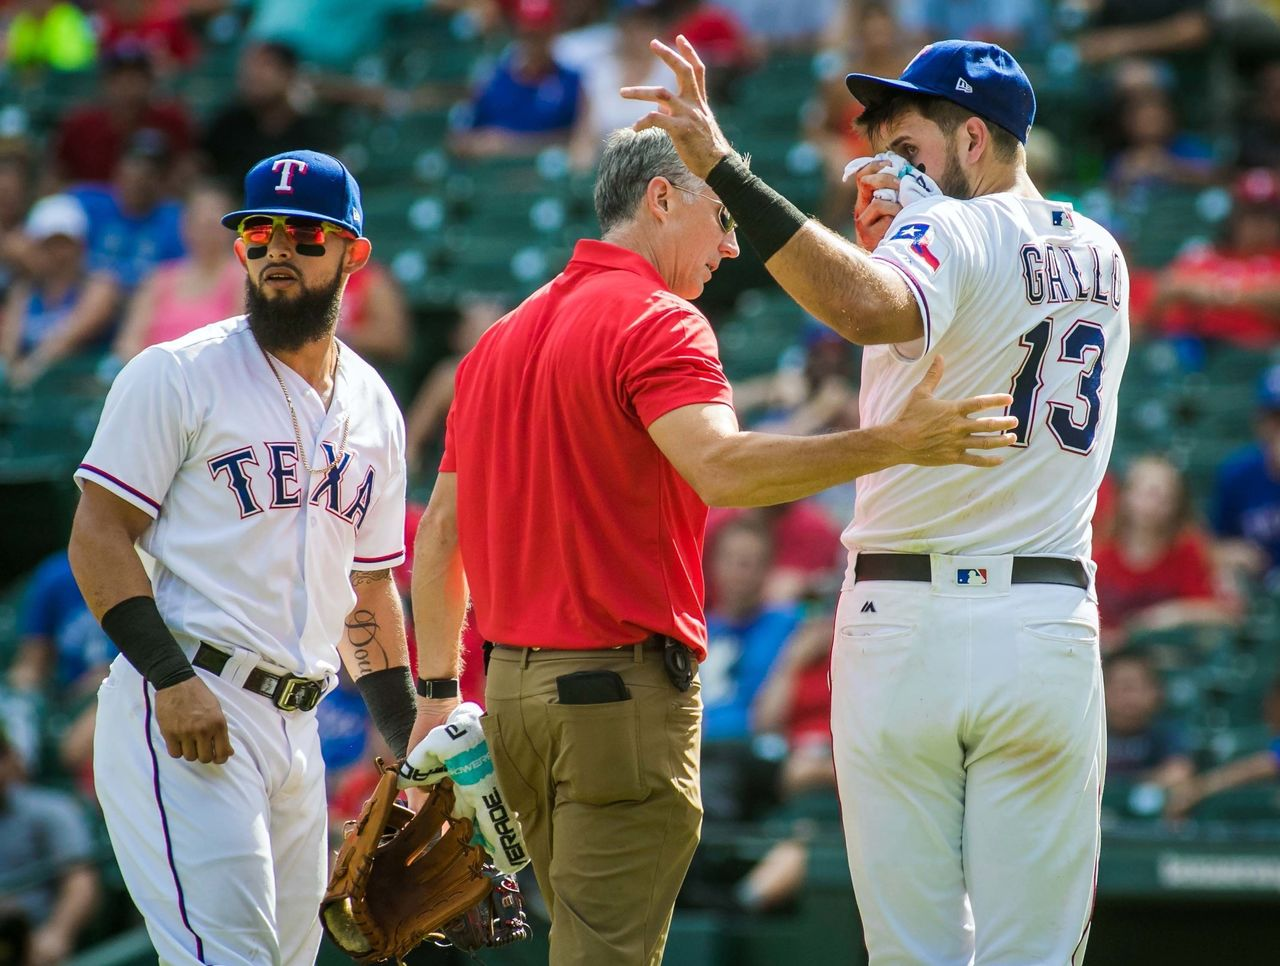 Cropped 2017 08 20t234933z 100573409 nocid rtrmadp 3 mlb chicago white sox at texas rangers